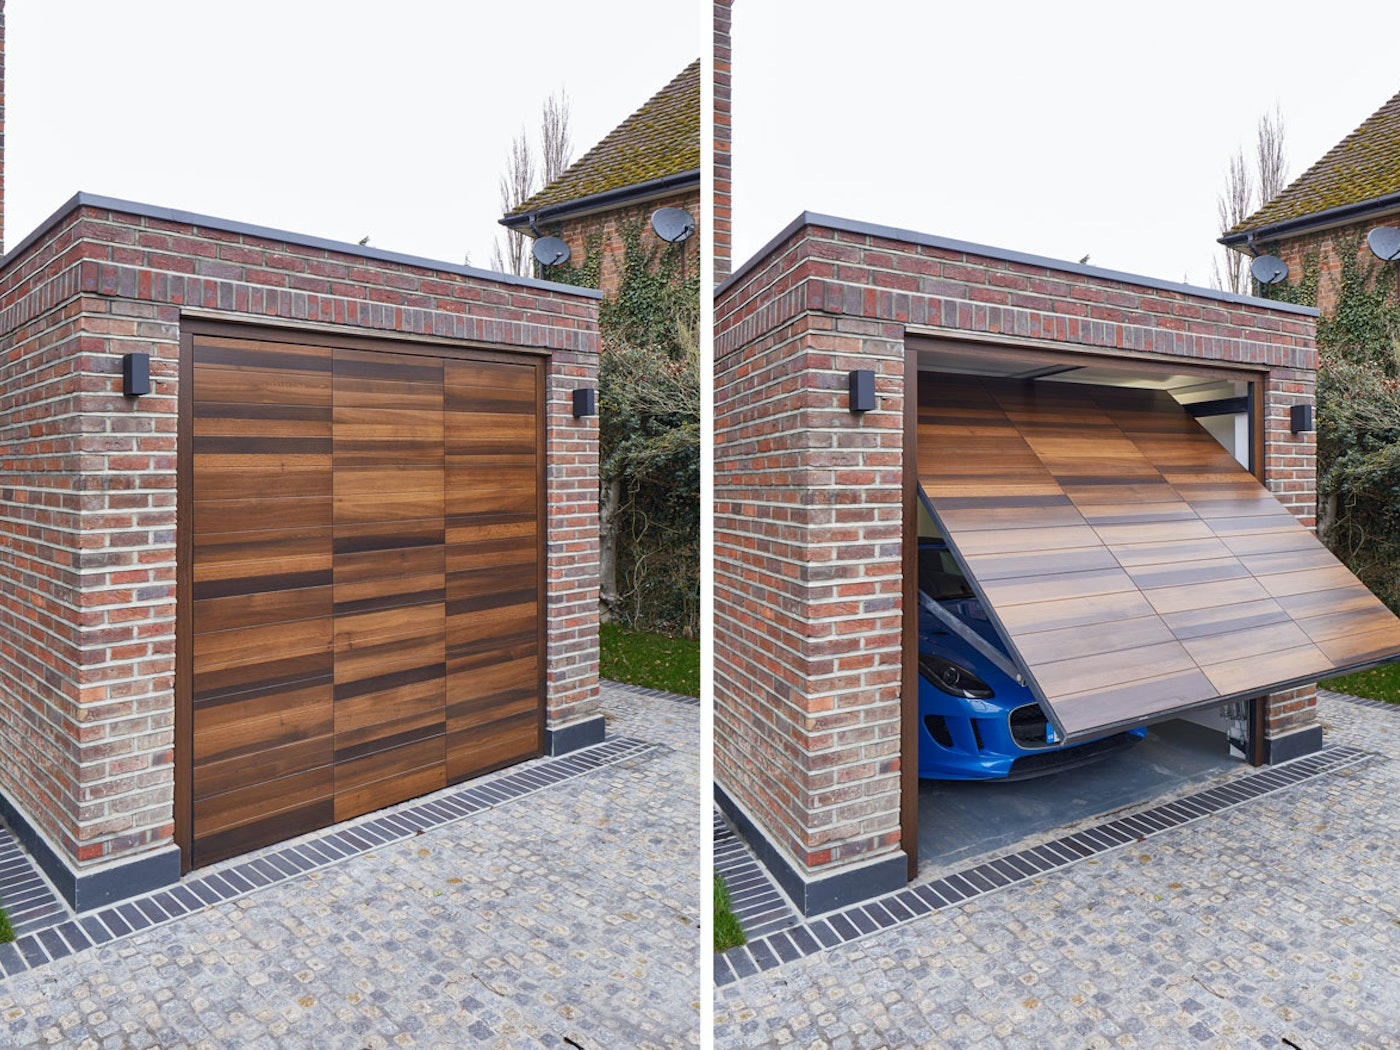 Up and over garage doors | Open & closed views | Urban Front